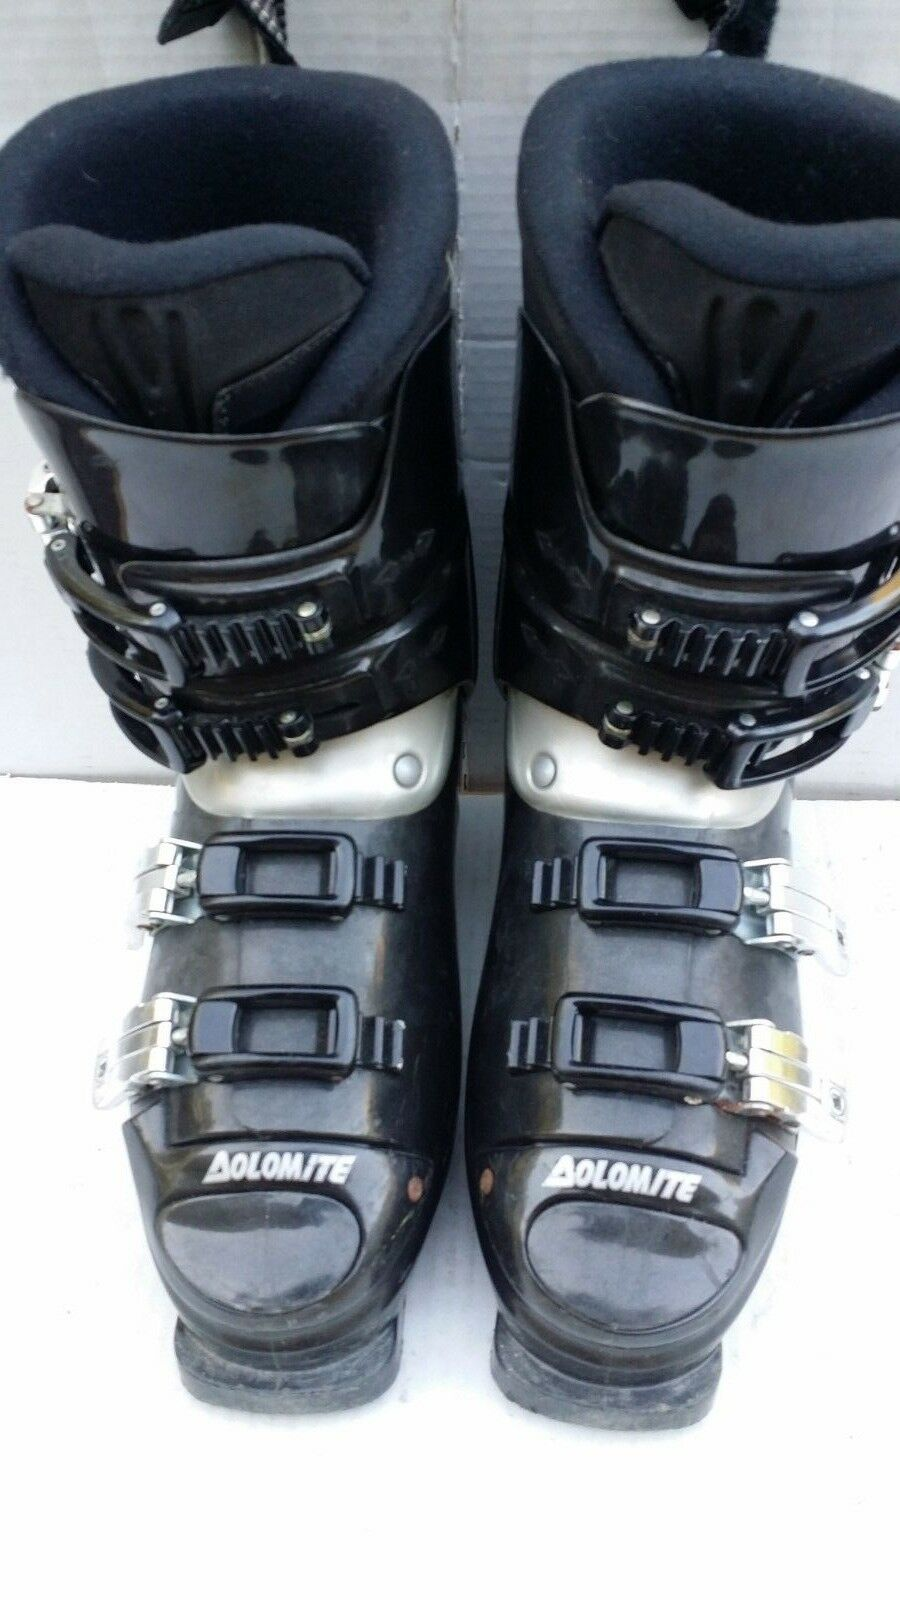 Dolomite FX 1 Downhill  Ski Boots Size 250 – 275  here has the latest